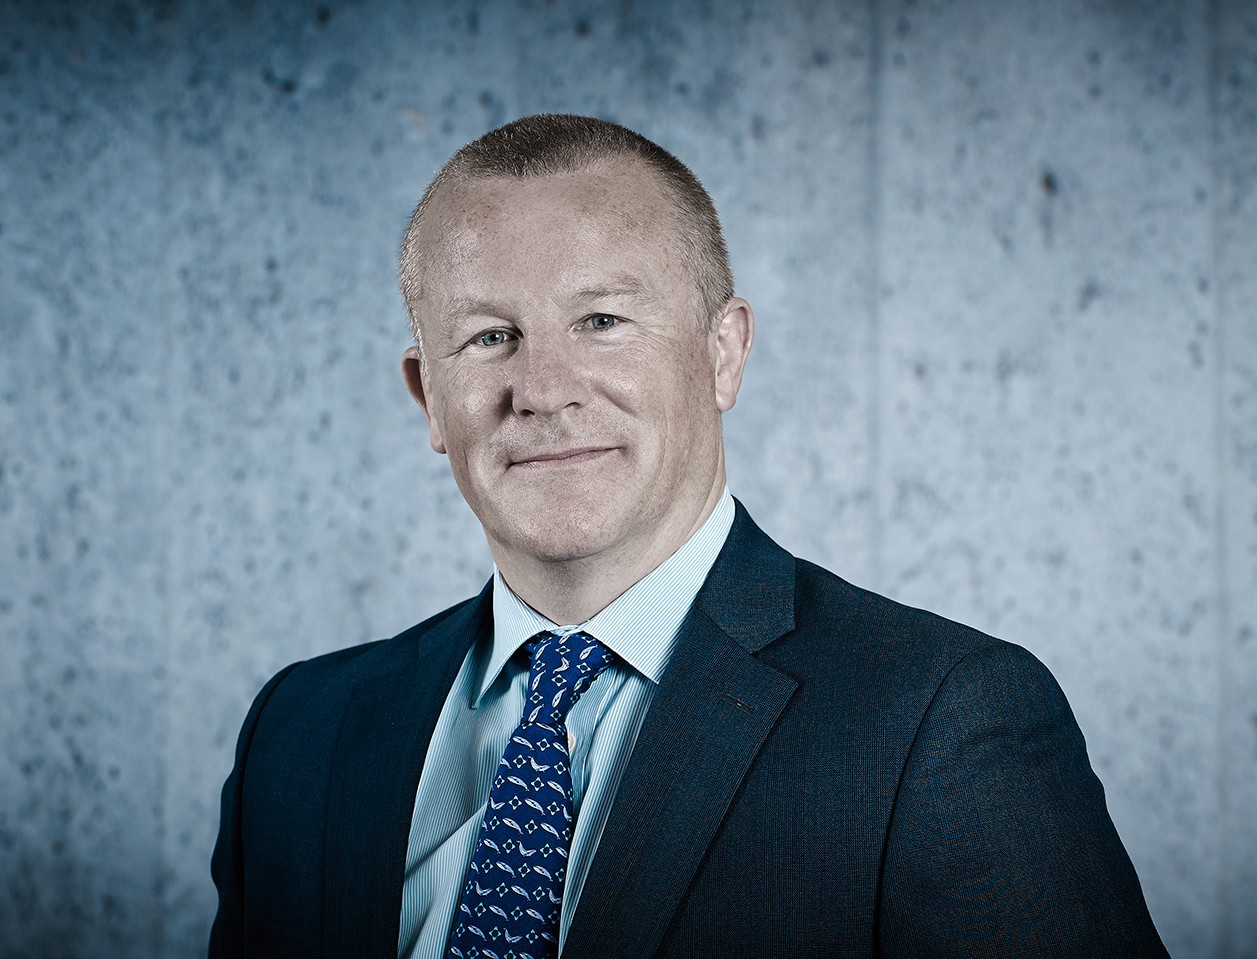 Image of Neil Woodford, failed UK fund manager of Woodford Equity Income Fund